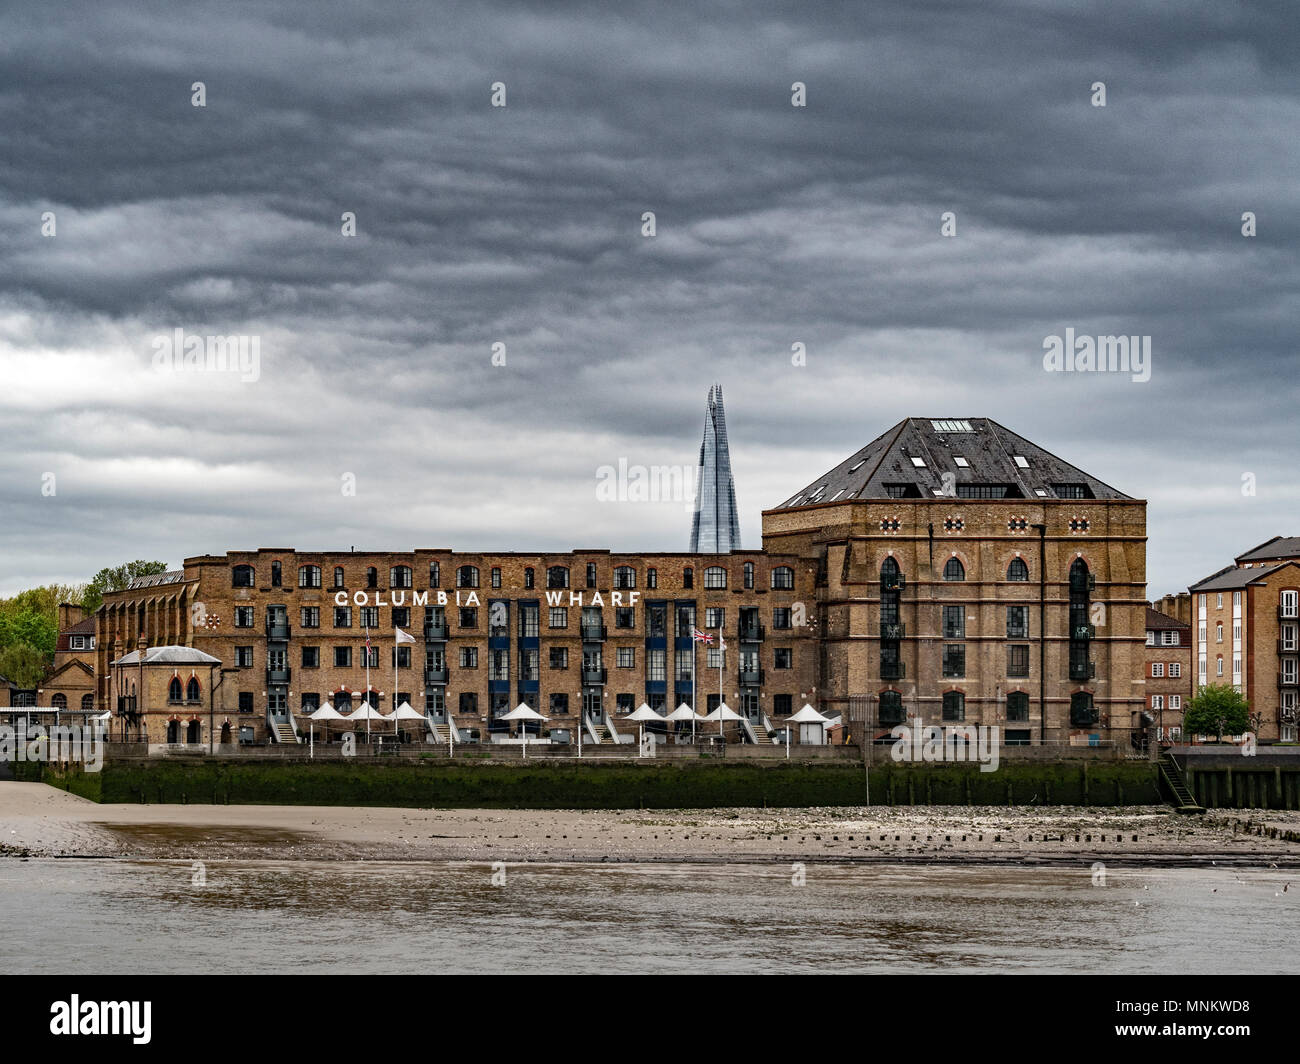 Columbia Wharf (Colombia Wharf), listed building in Rotherhithe, south bank of the River Thames with the Shard in the background. - Stock Image